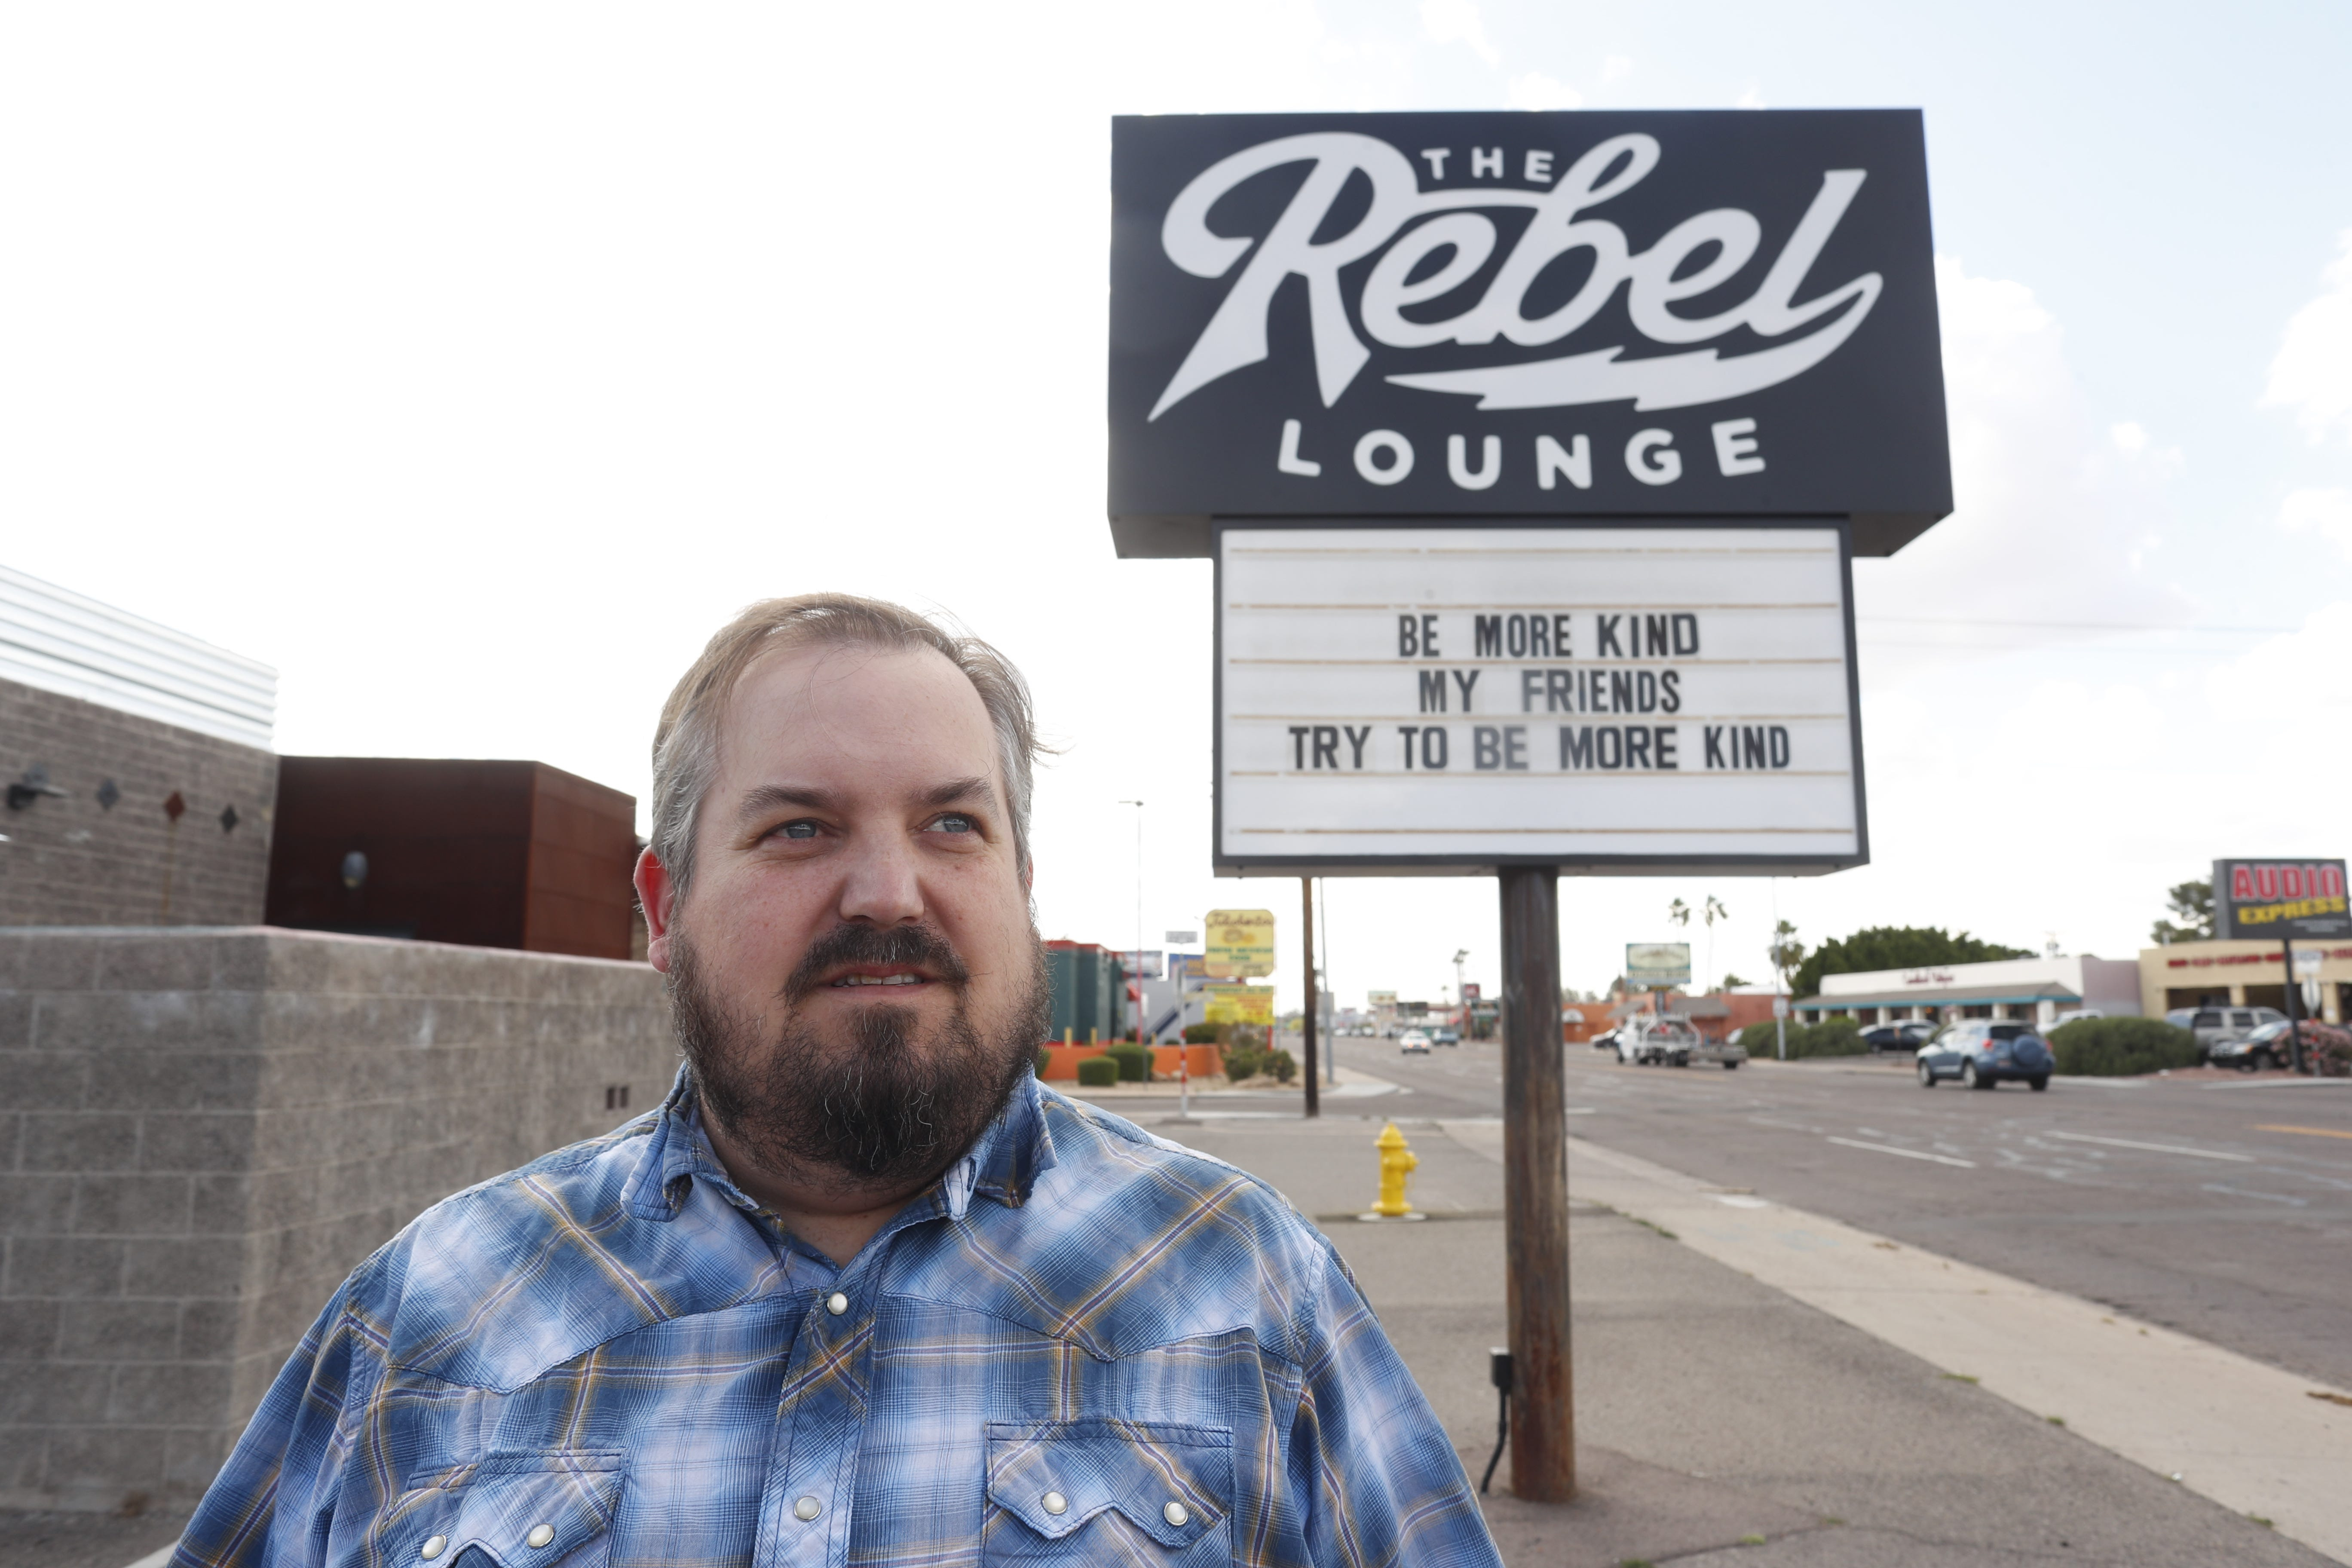 Without concerts, Phoenix music venues have gone quiet. But their workers need your help